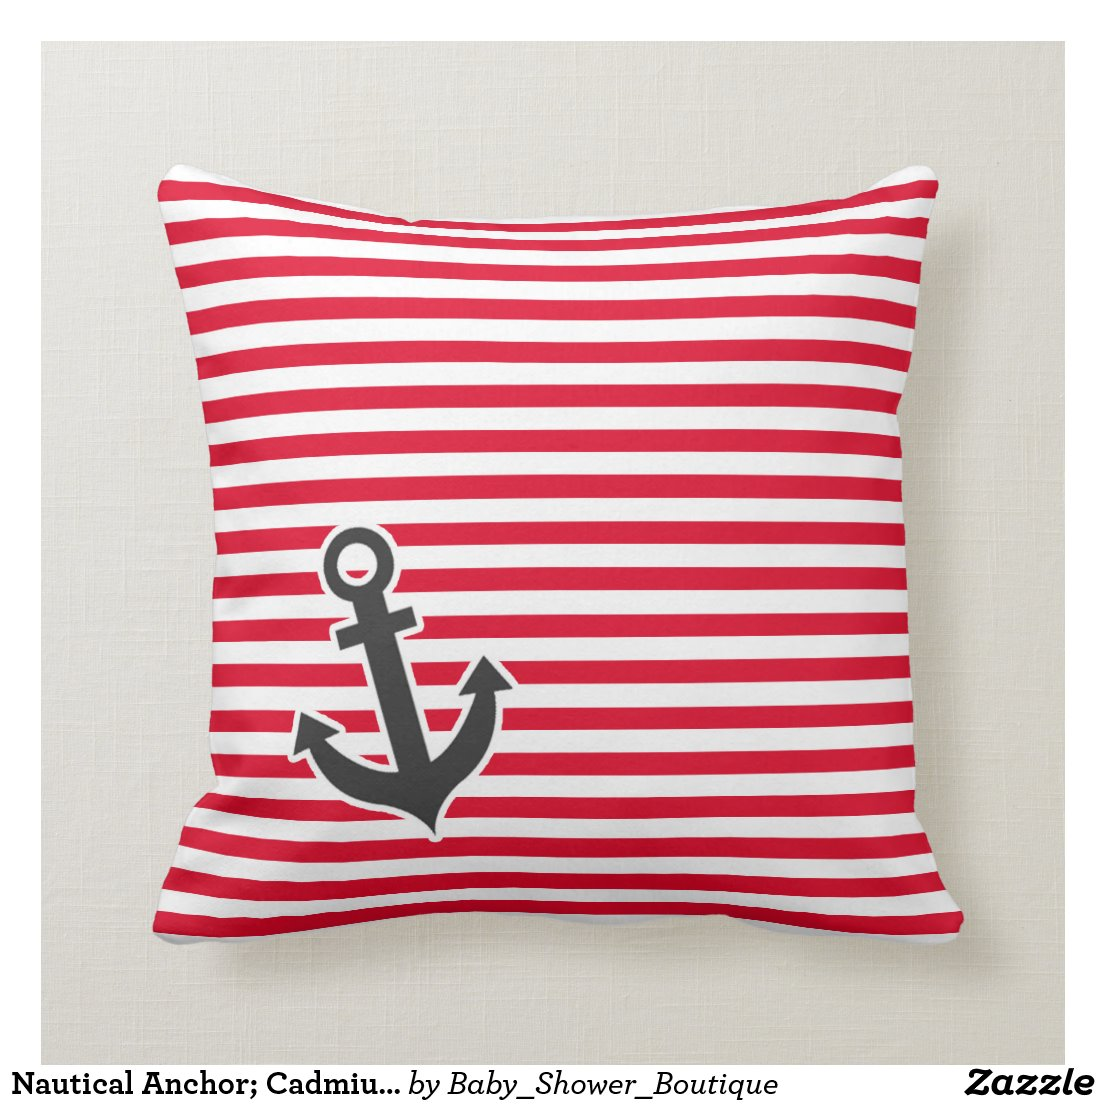 Nautical Anchor; Cadmium Red Stripes; Striped